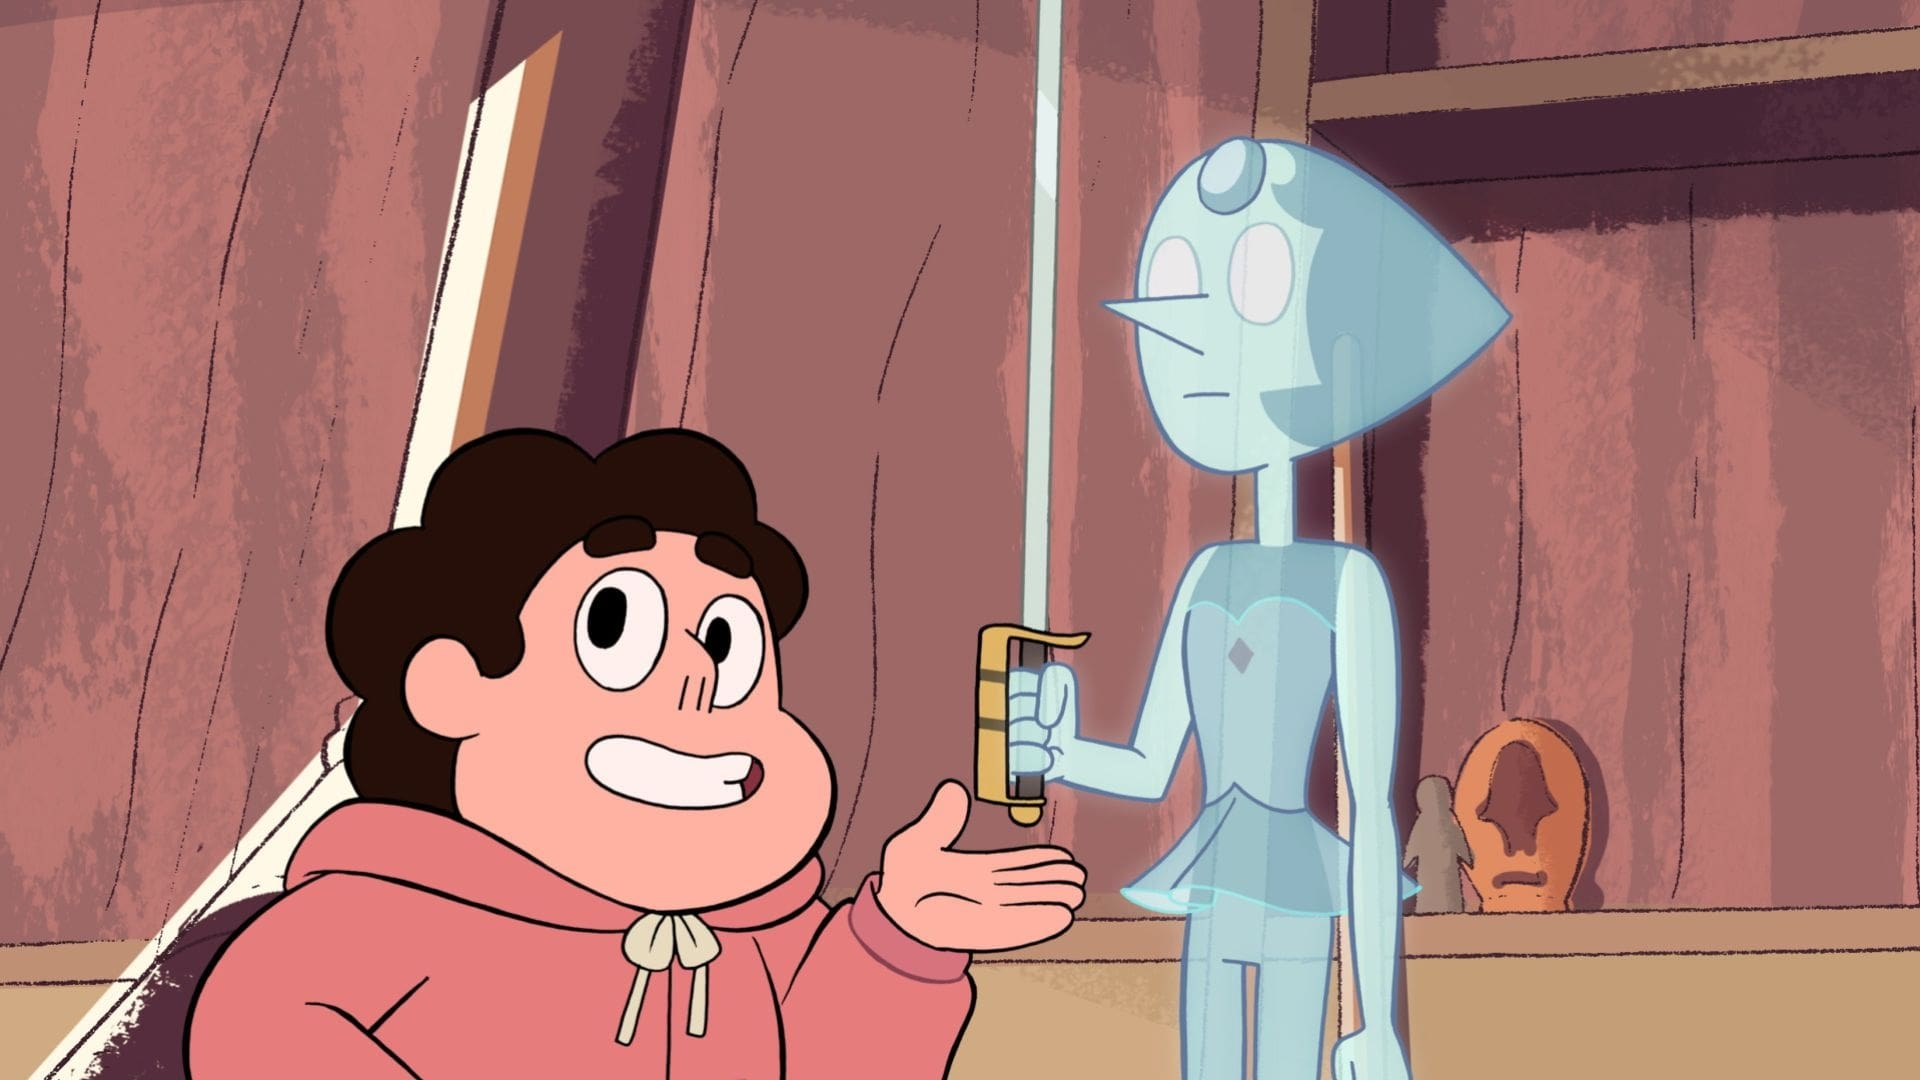 the notion of feminism in steven universe an american animated series Steven universe steven universe is an american animated children's tv series created by rebecca sugar, cartoon network's first female director, that premiered on cartoon network in november 2013 the story centers around the crystal gems and their various adventures, while steven gradually learns how to use his gem power so he can play.